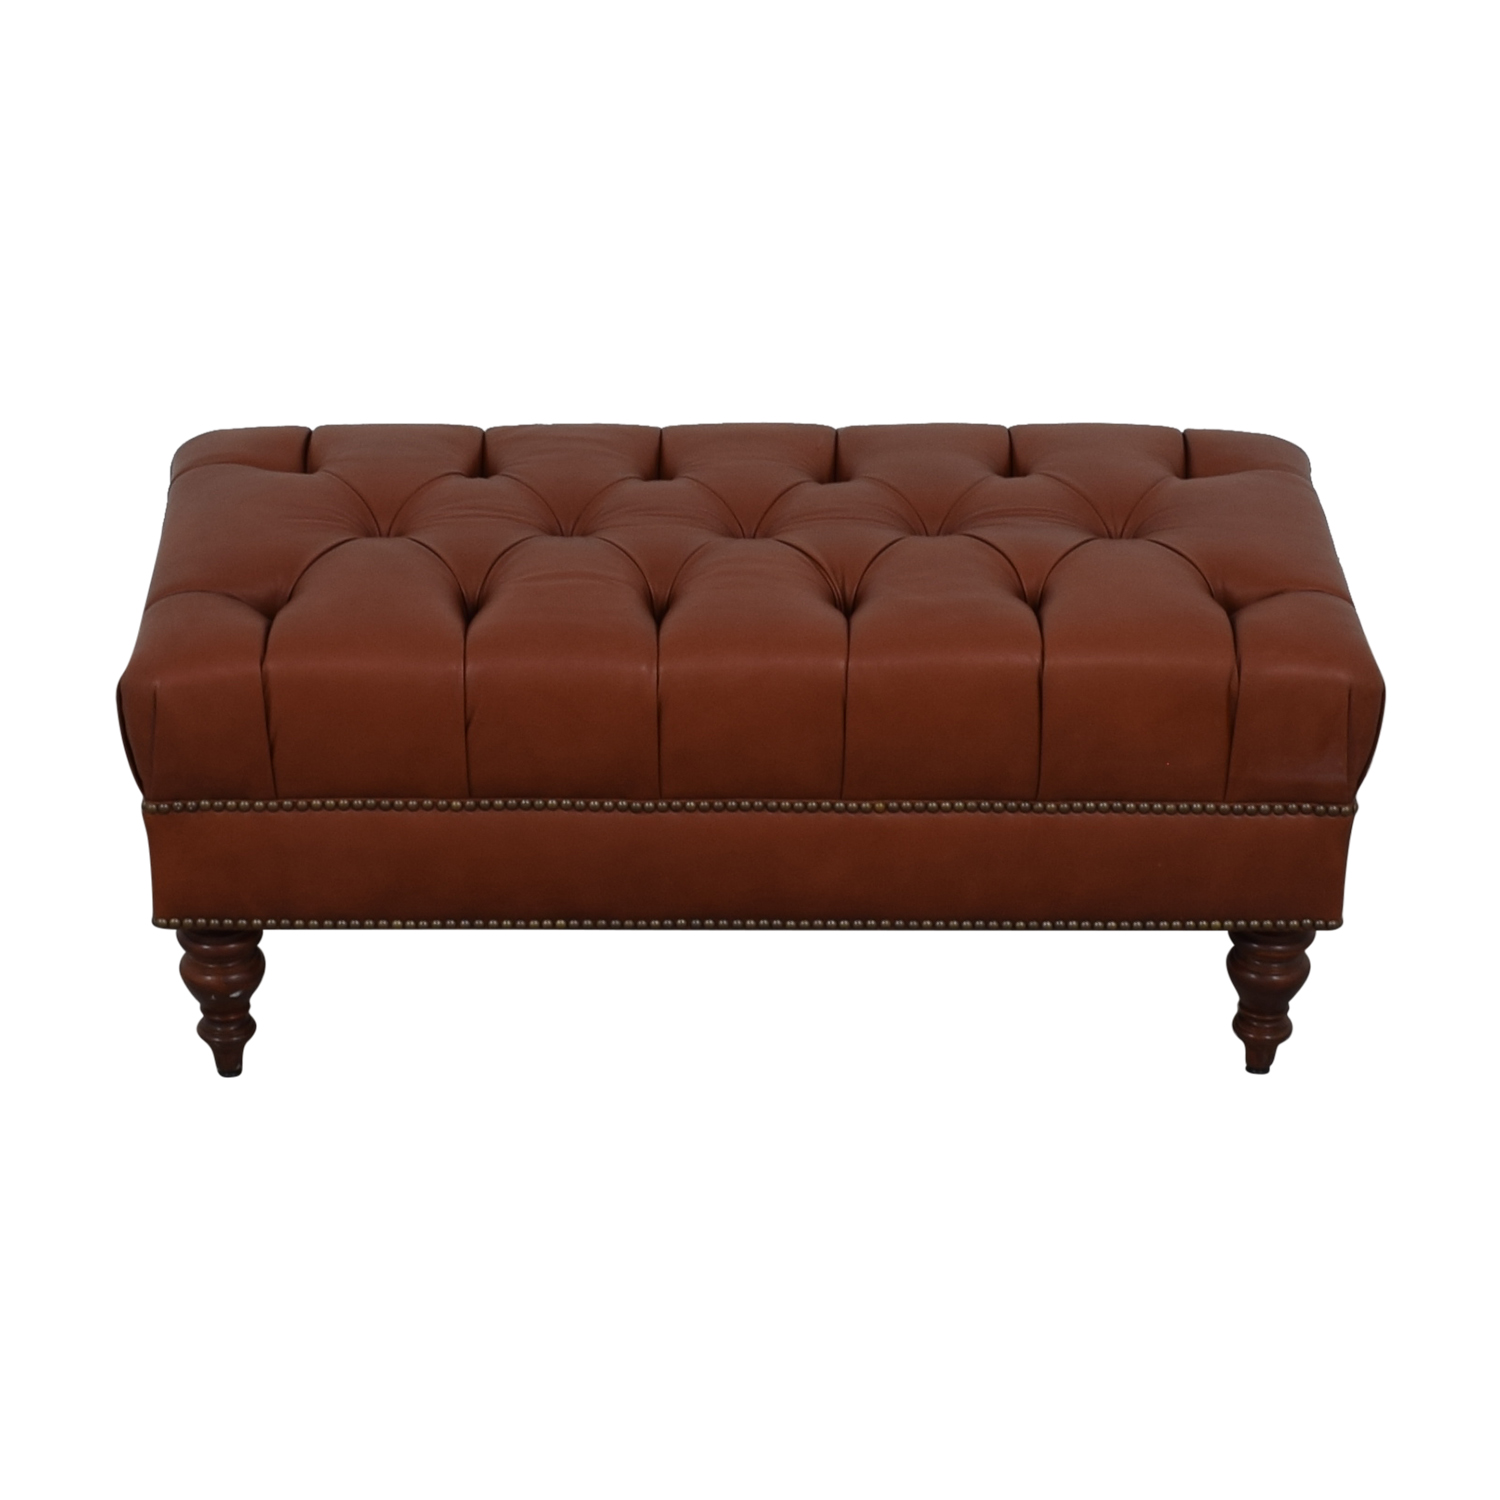 Furniture Masters Furniture Masters Tufted Ottoman discount